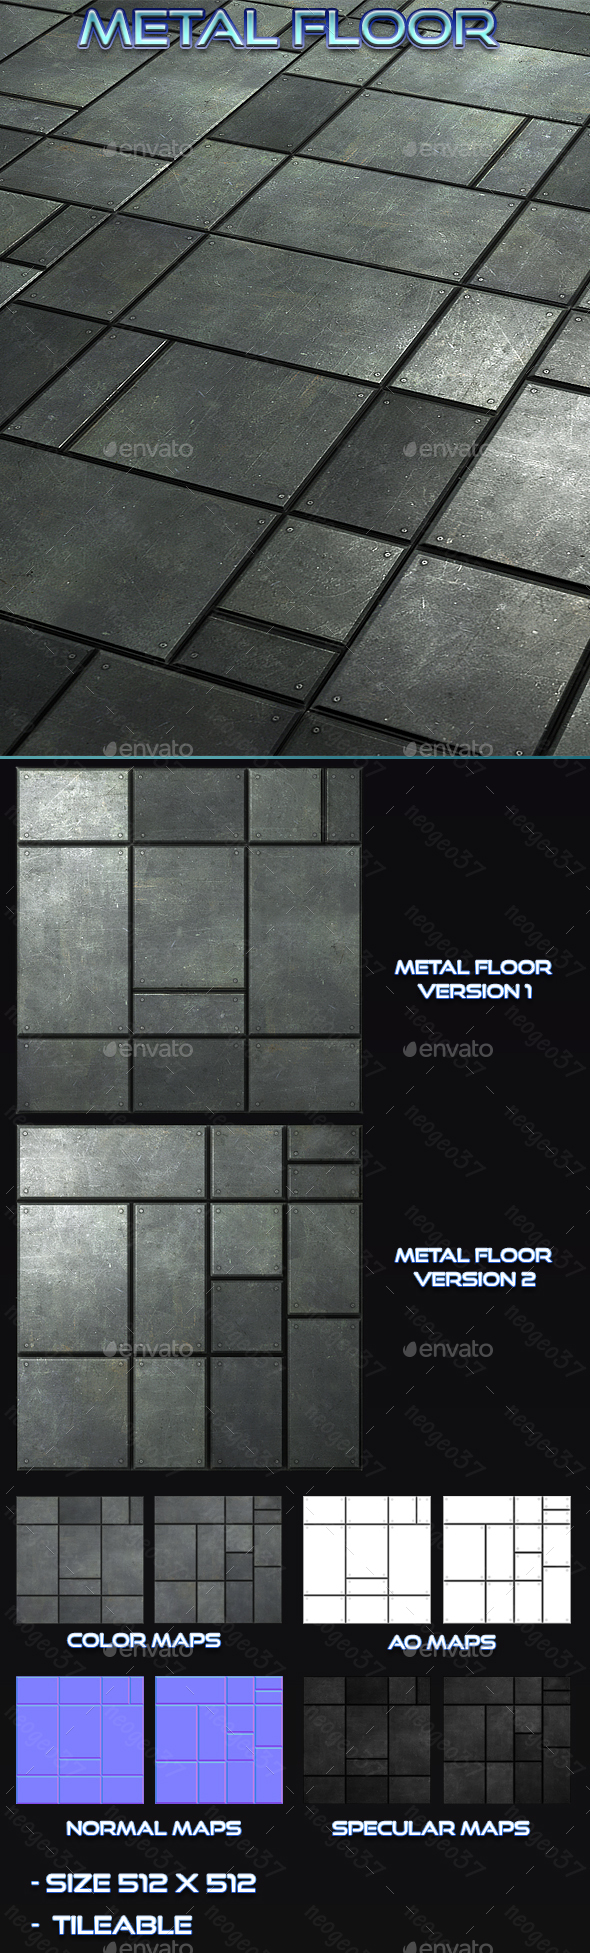 Metal Floor Title - 3DOcean Item for Sale